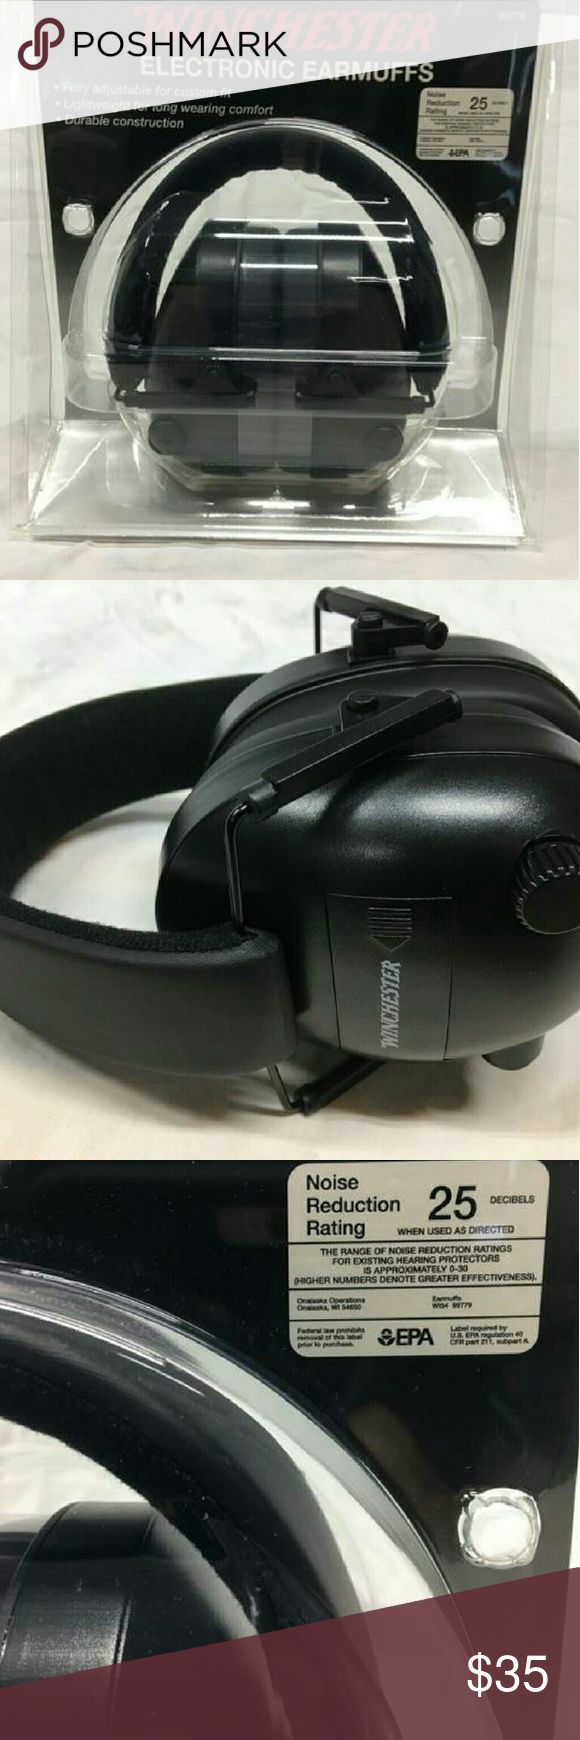 New Winchester Electronic Ear Muffs New in package Winchester Electronic Ear Muffs. Great for shooting range and can communicate with others. Other